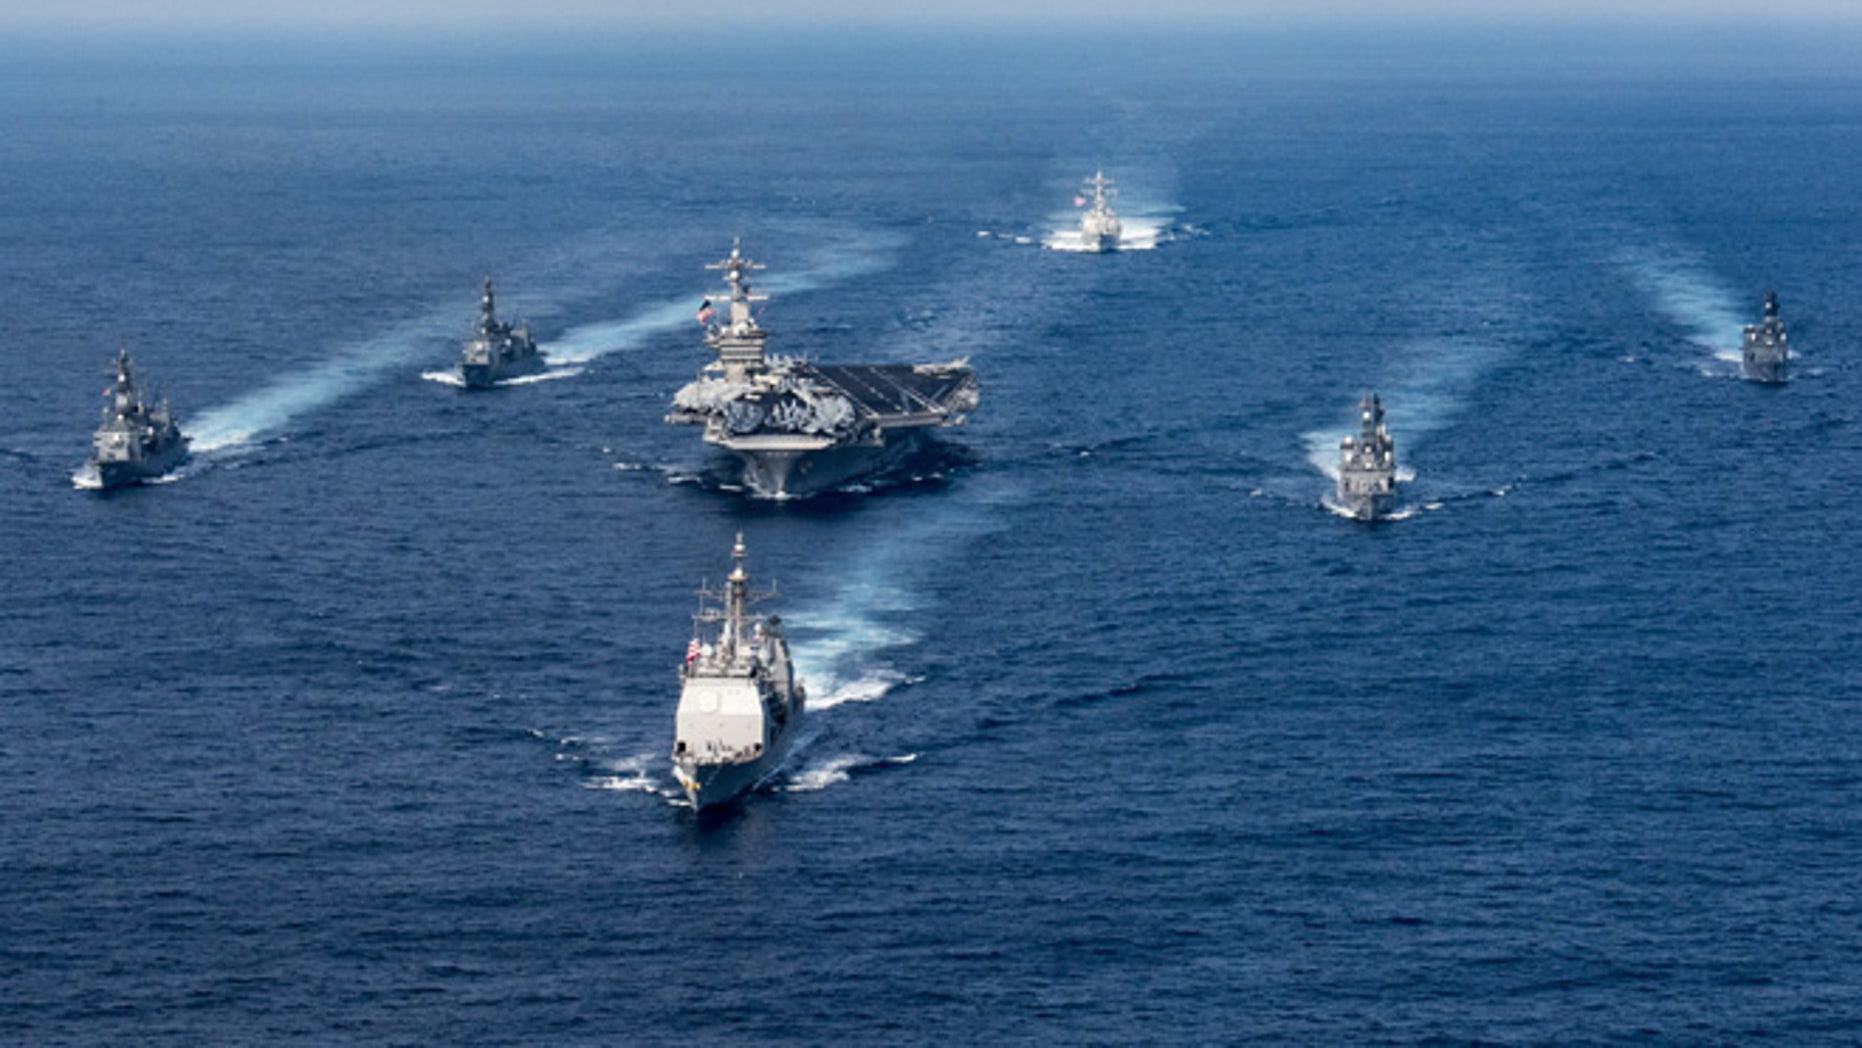 The USS Carl Vinson (CVN 70), the guided-missile destroyer USS Wayne E. Meyer (DDG 108) and the guided-missile cruiser USS Lake Champlain (CG 57) on deployment to the Western Pacific.